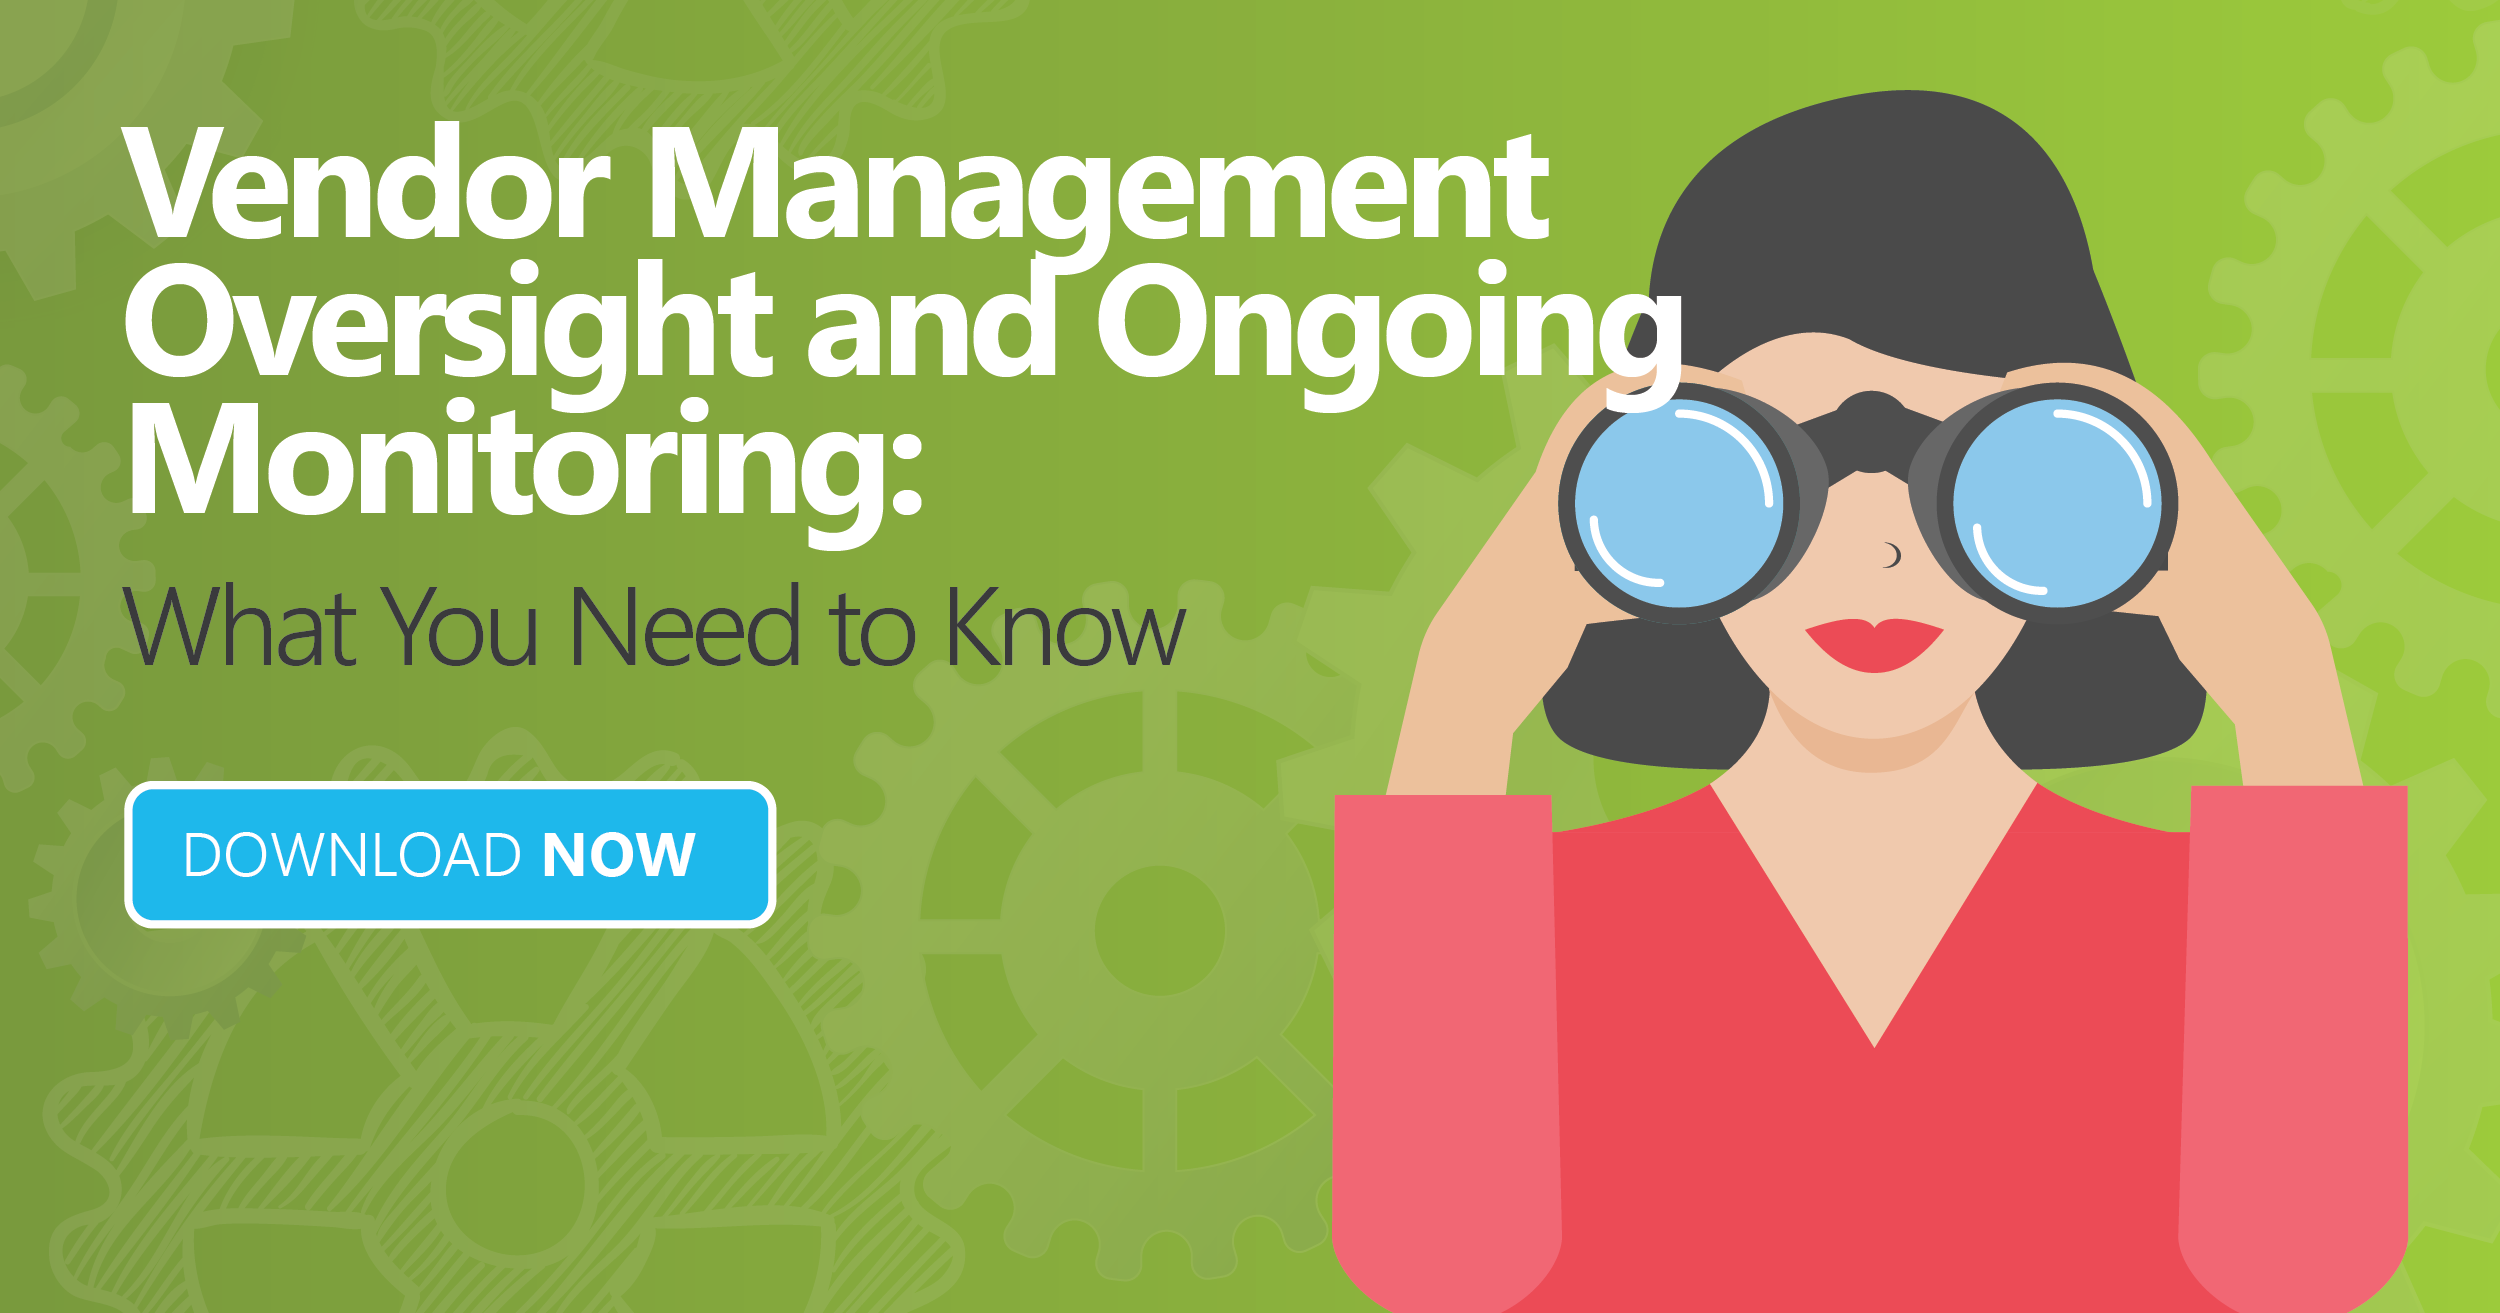 Vendor Management Oversight and Ongoing Monitoring